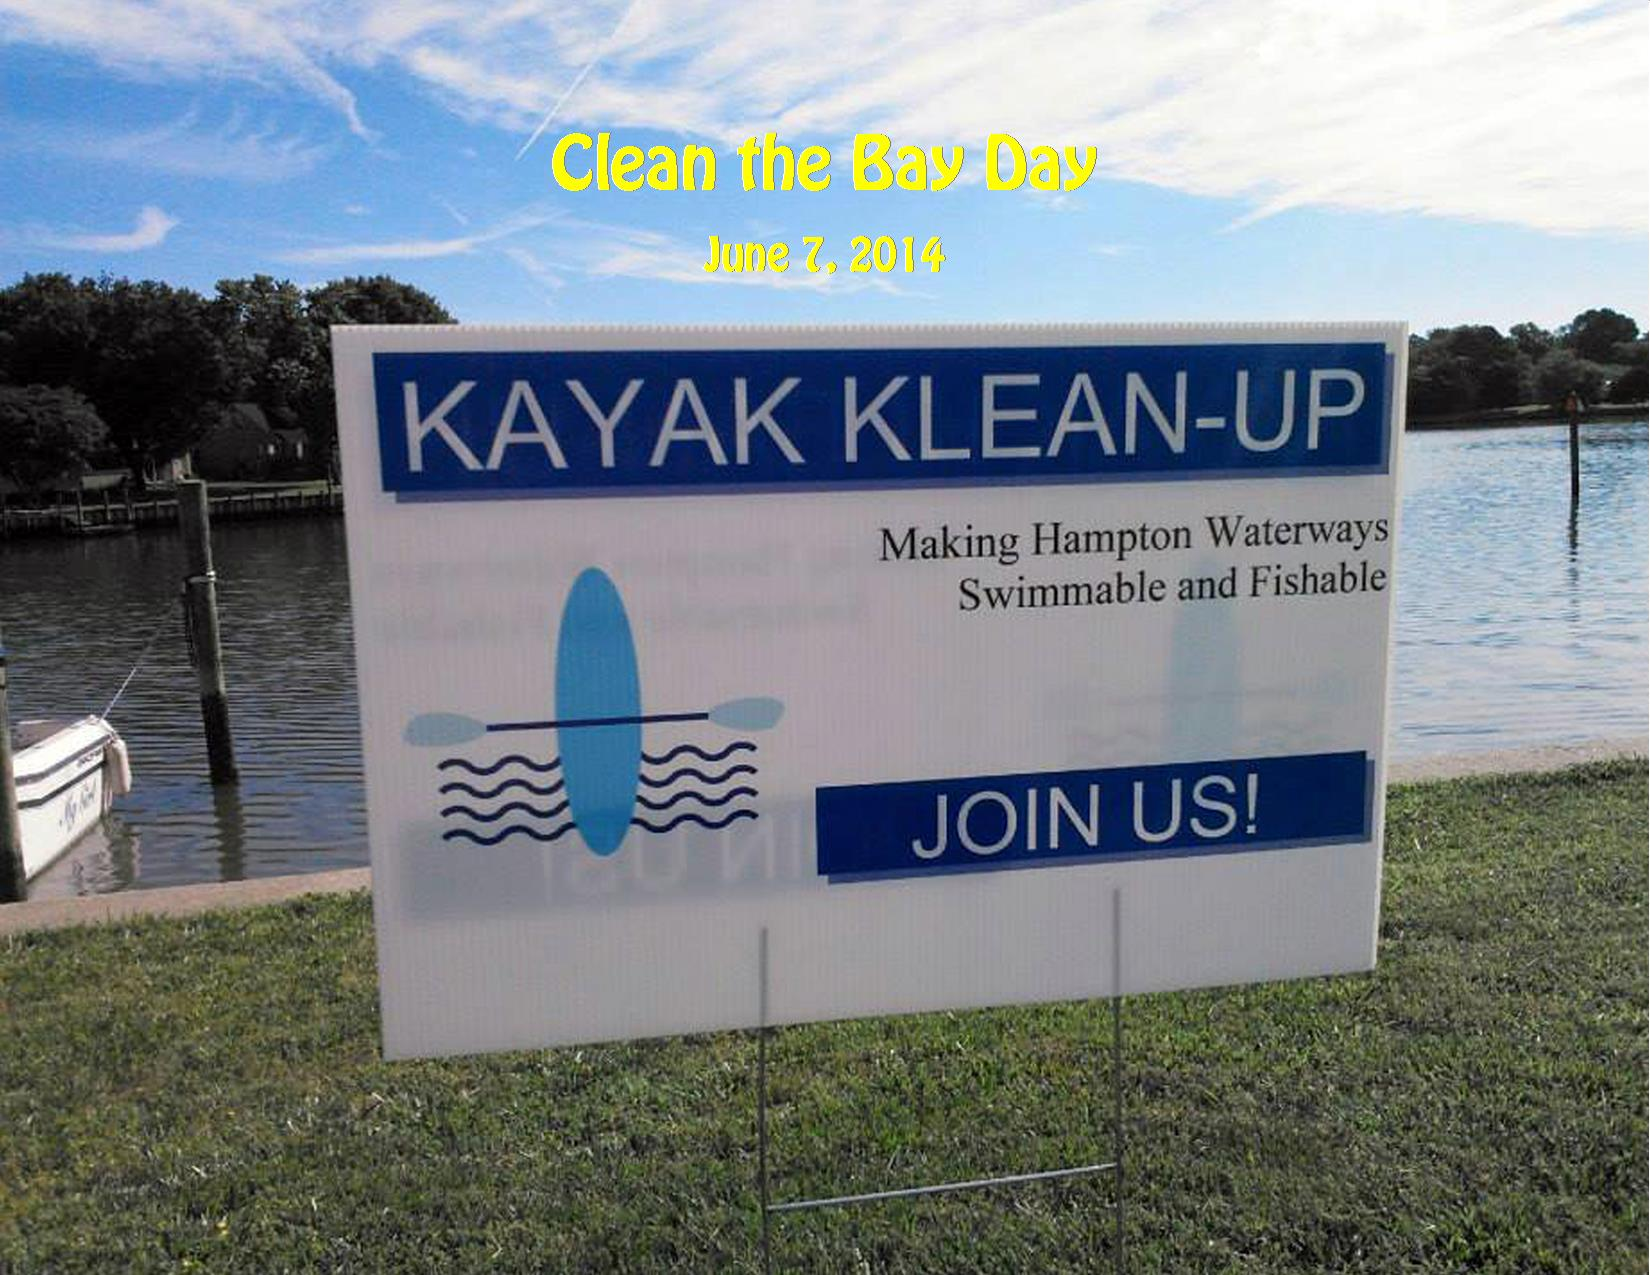 6-7-14 Clean the Bay Day Kayak Kleanup